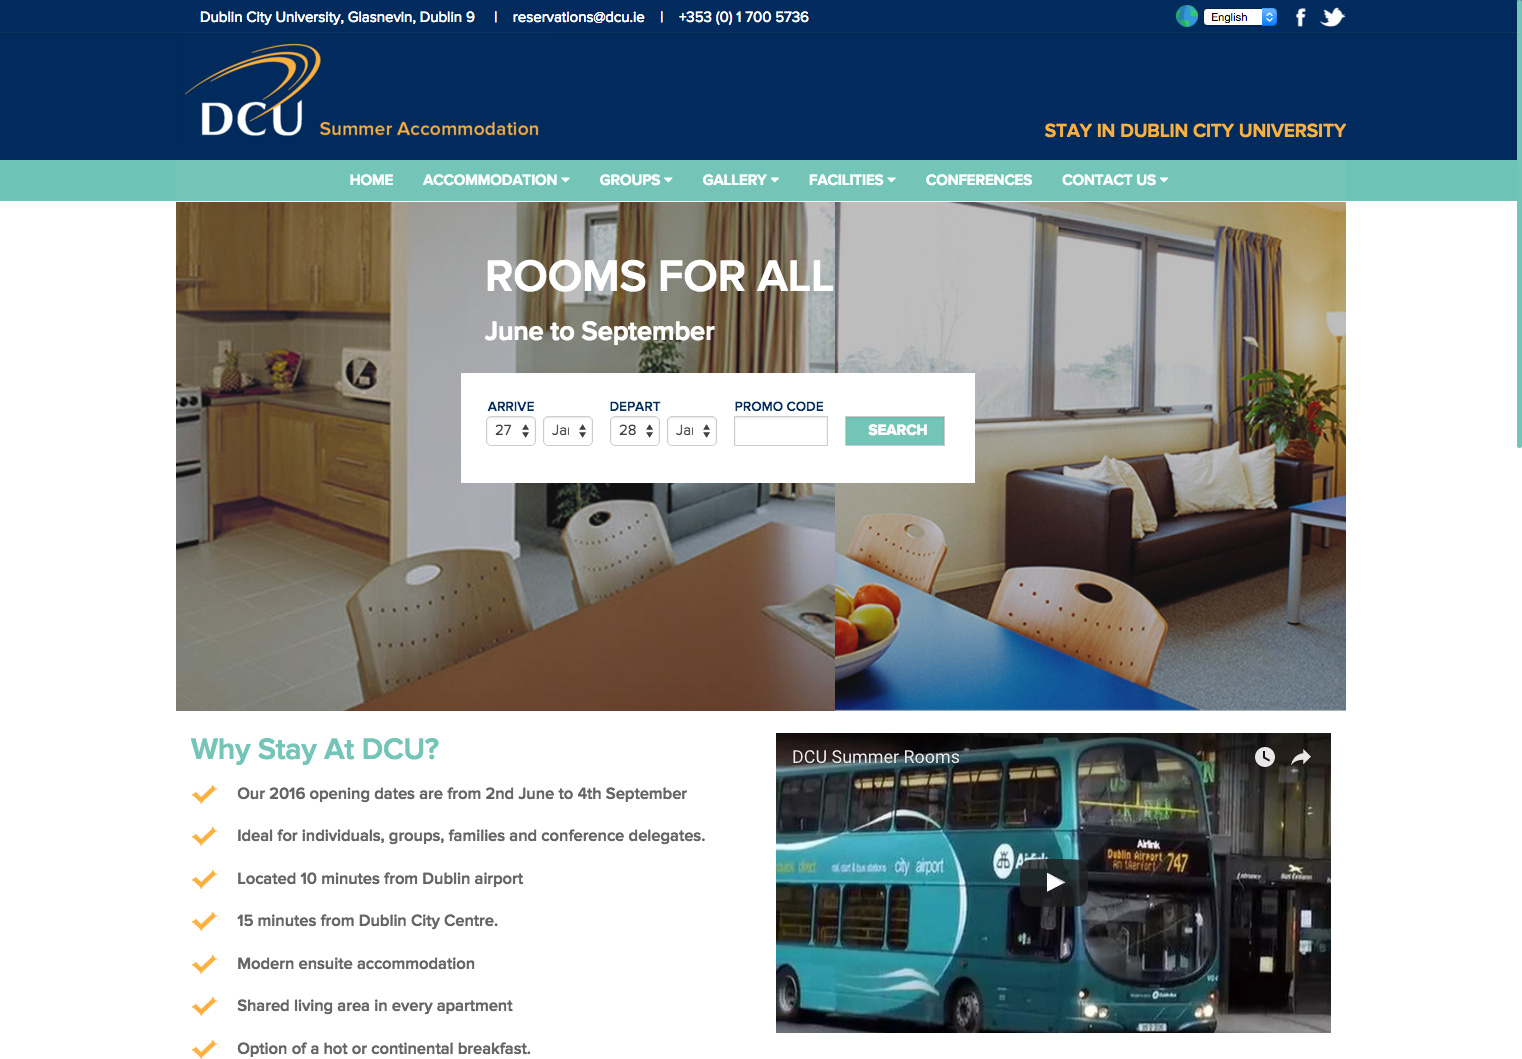 screencapture-dcusummeraccommodation-ie-1453907278301